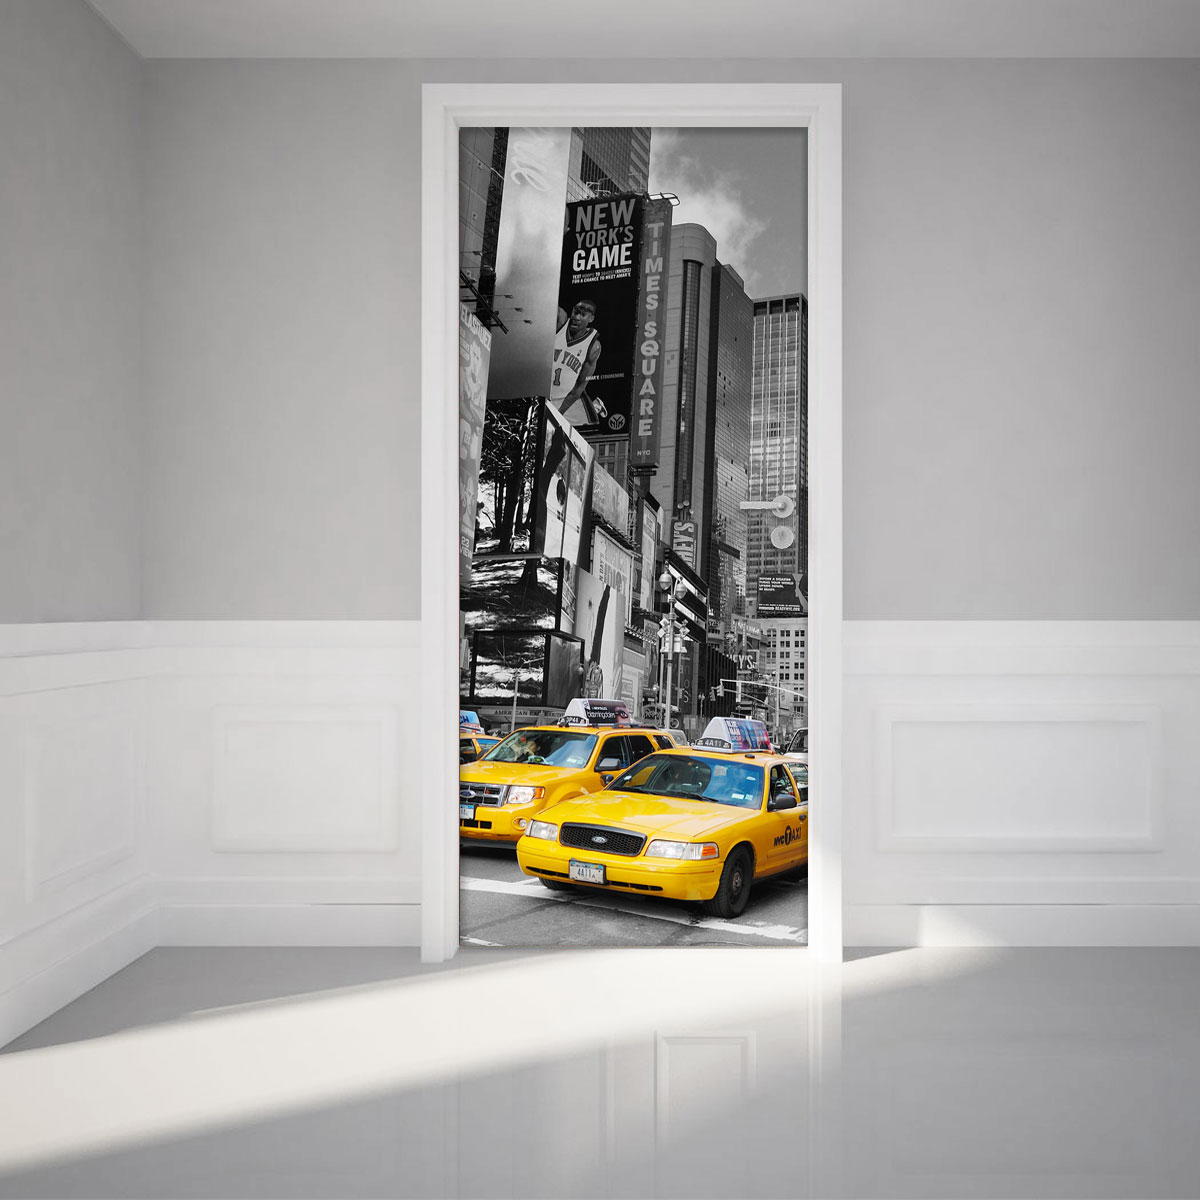 Sticker porte 204x83 cm time square et taxis stickers villes et voyages n - Sticker porte new york ...